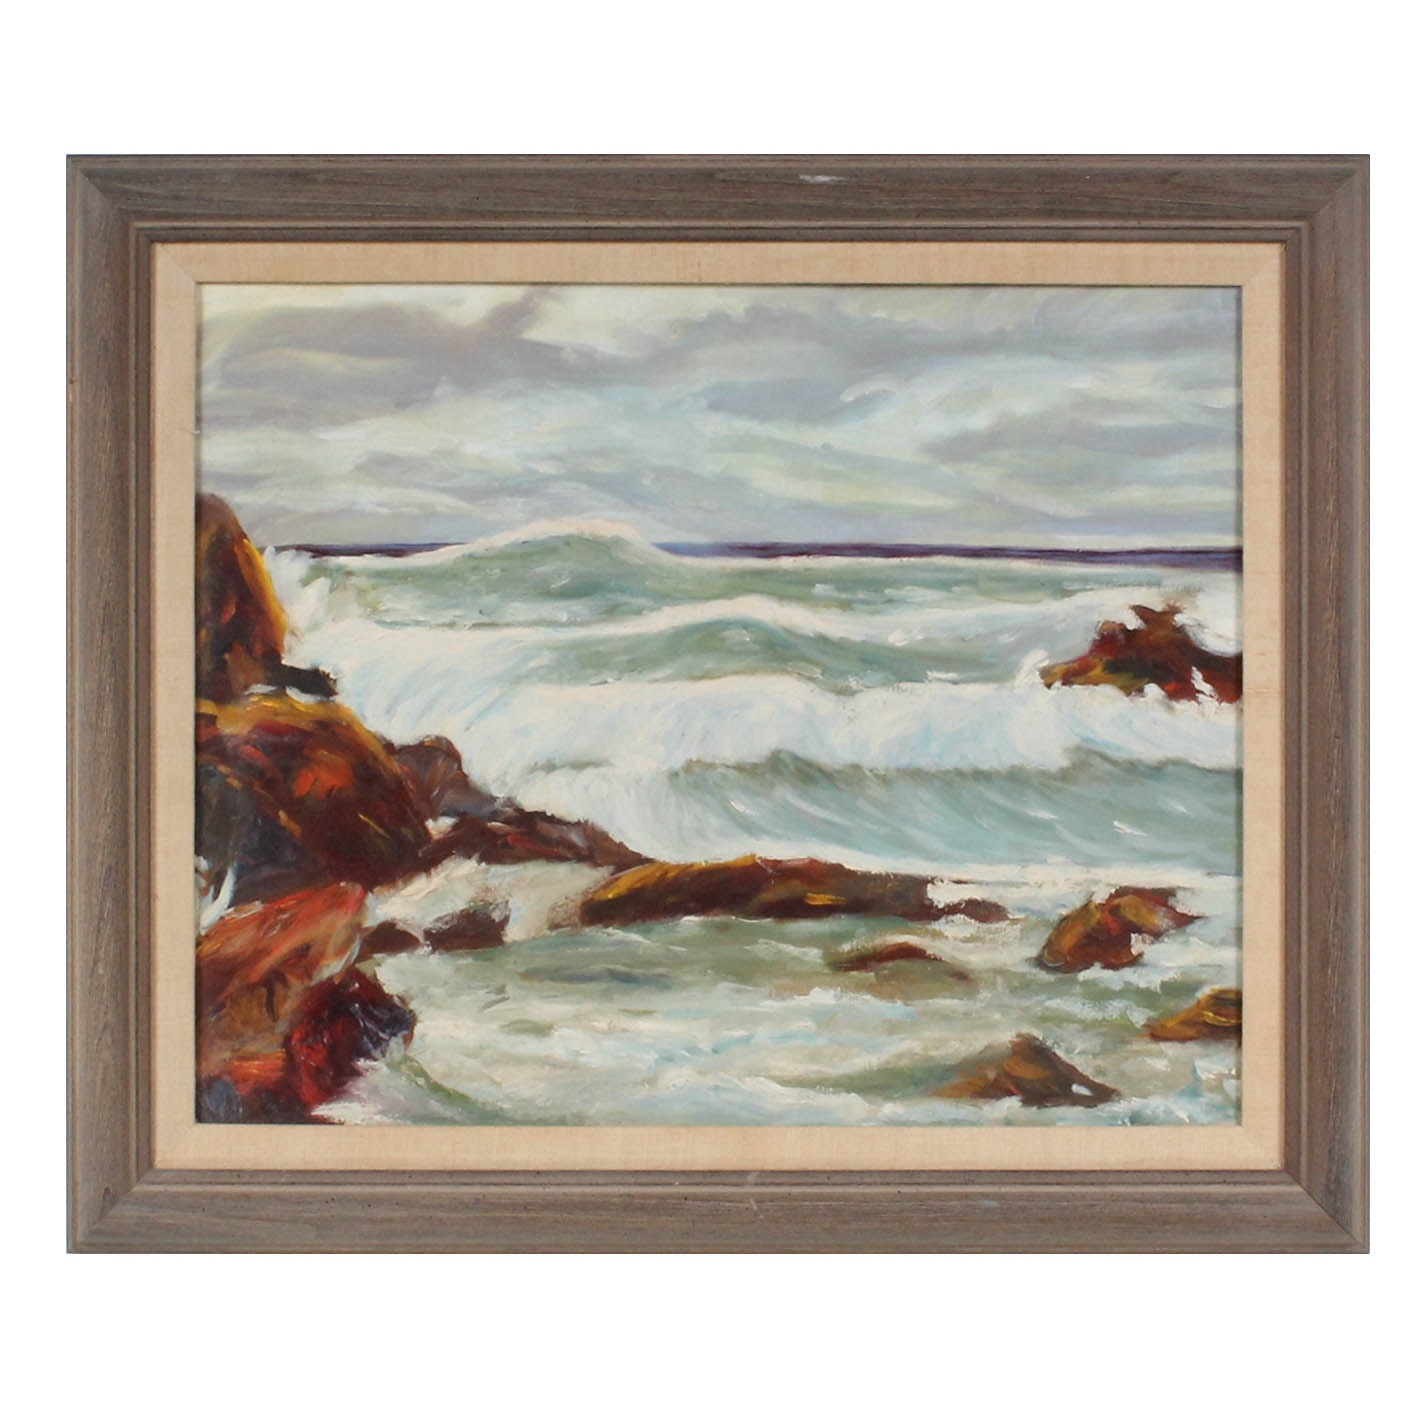 Oil on Board Seascape Painting